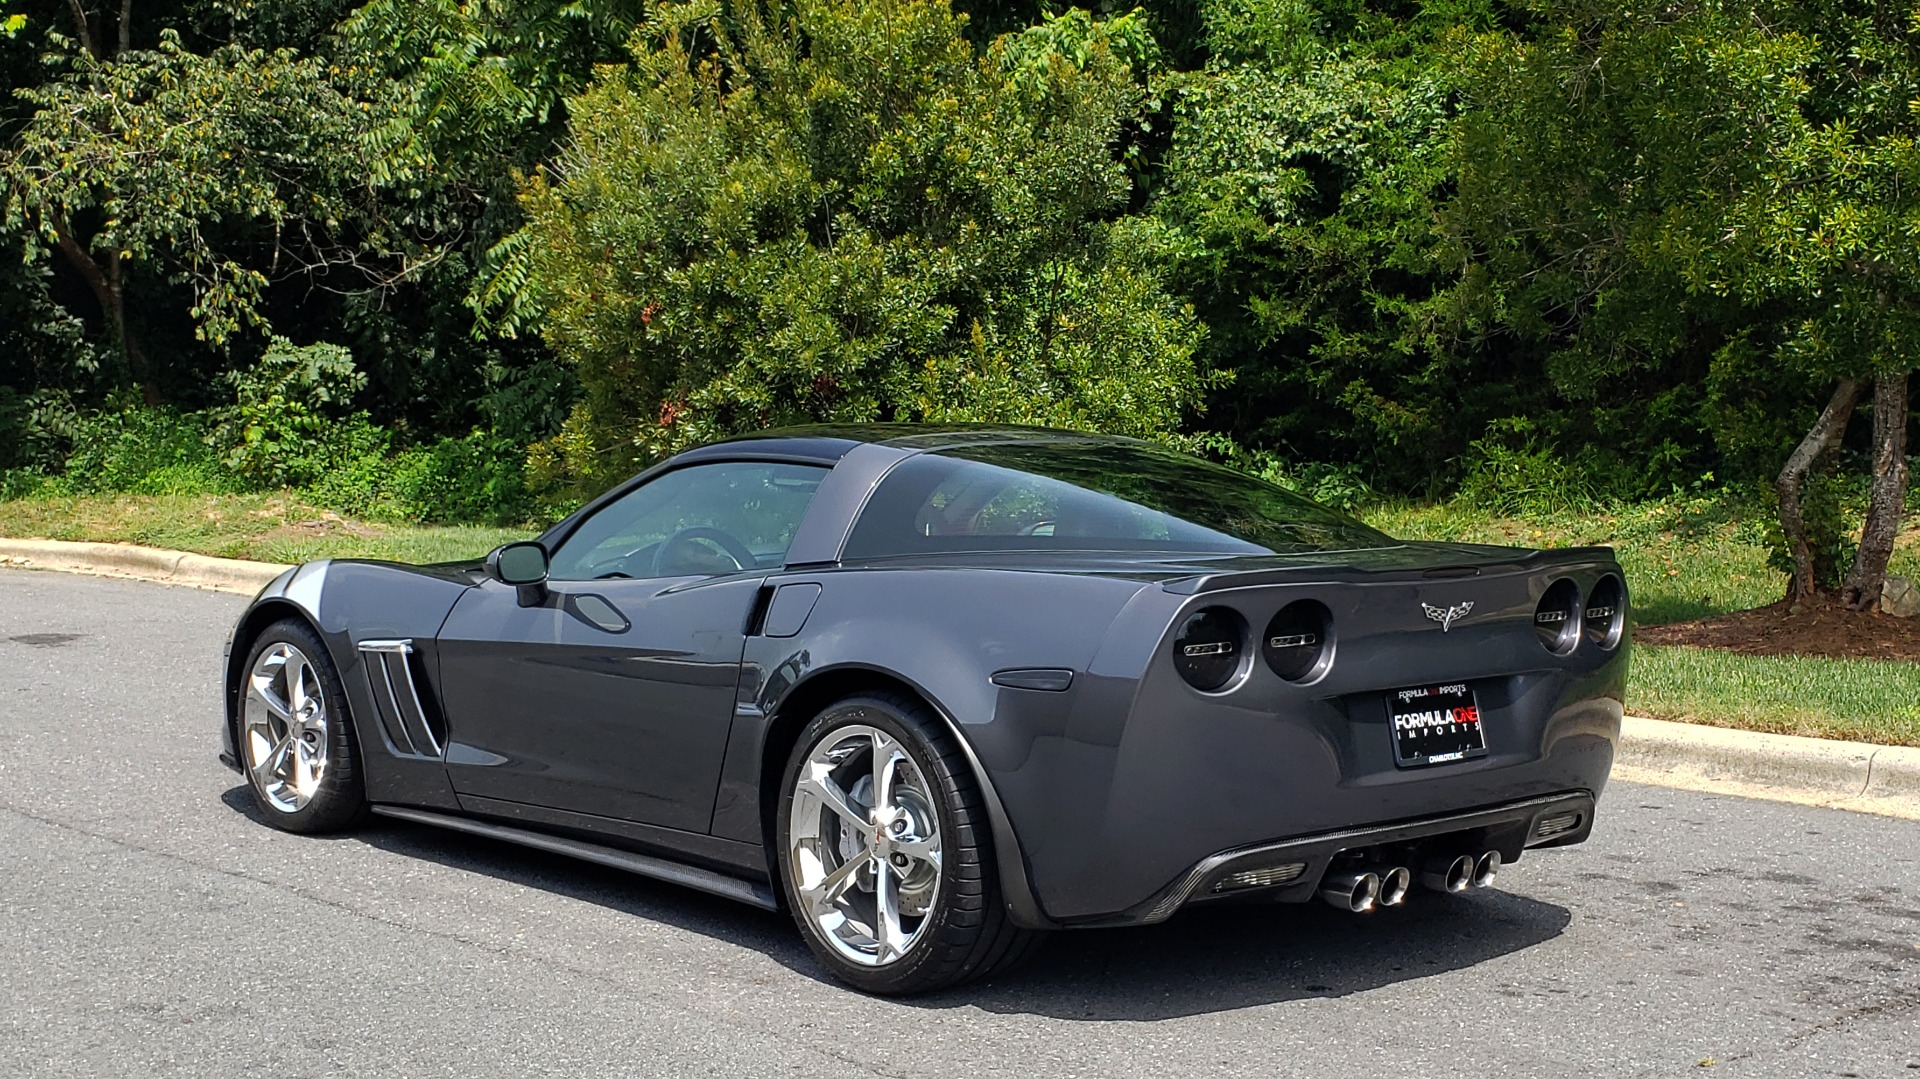 Used 2010 Chevrolet CORVETTE Z16 GRAND SPORT 3LT / HUD / 6.2L V8 / 6-SPD AUTO / NPP EXH for sale Sold at Formula Imports in Charlotte NC 28227 9